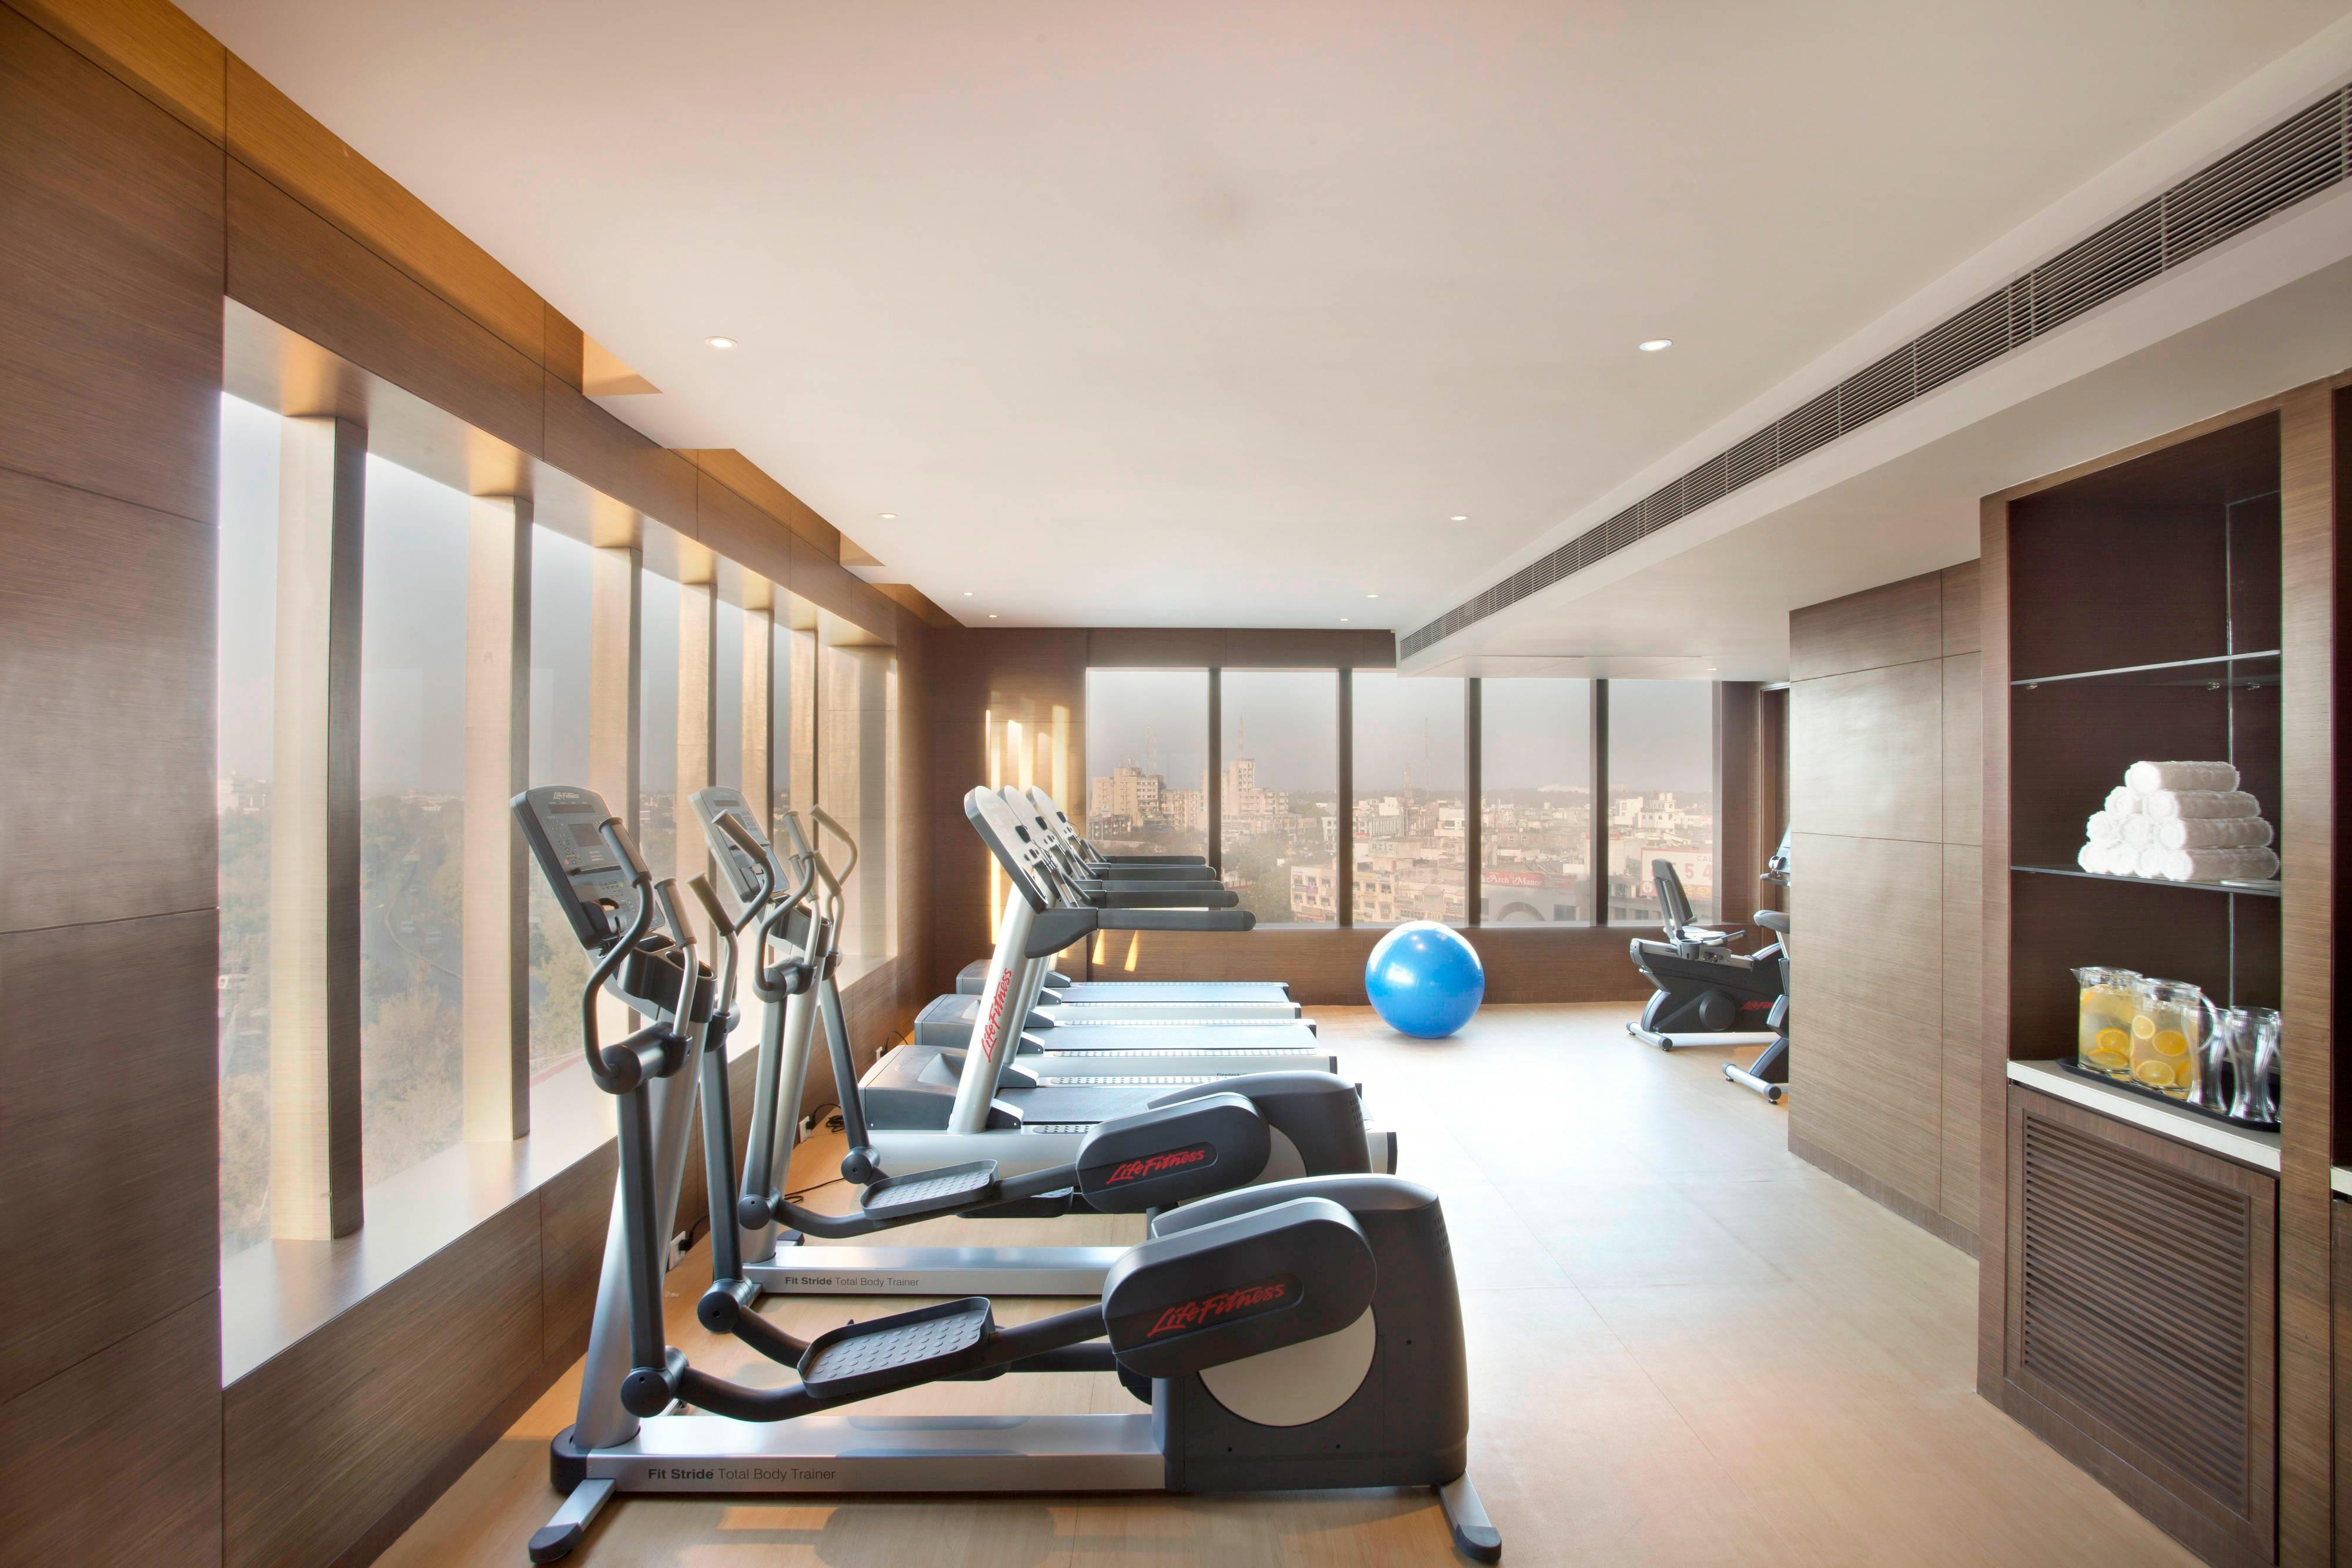 Fitness centre in Bhopal hotel